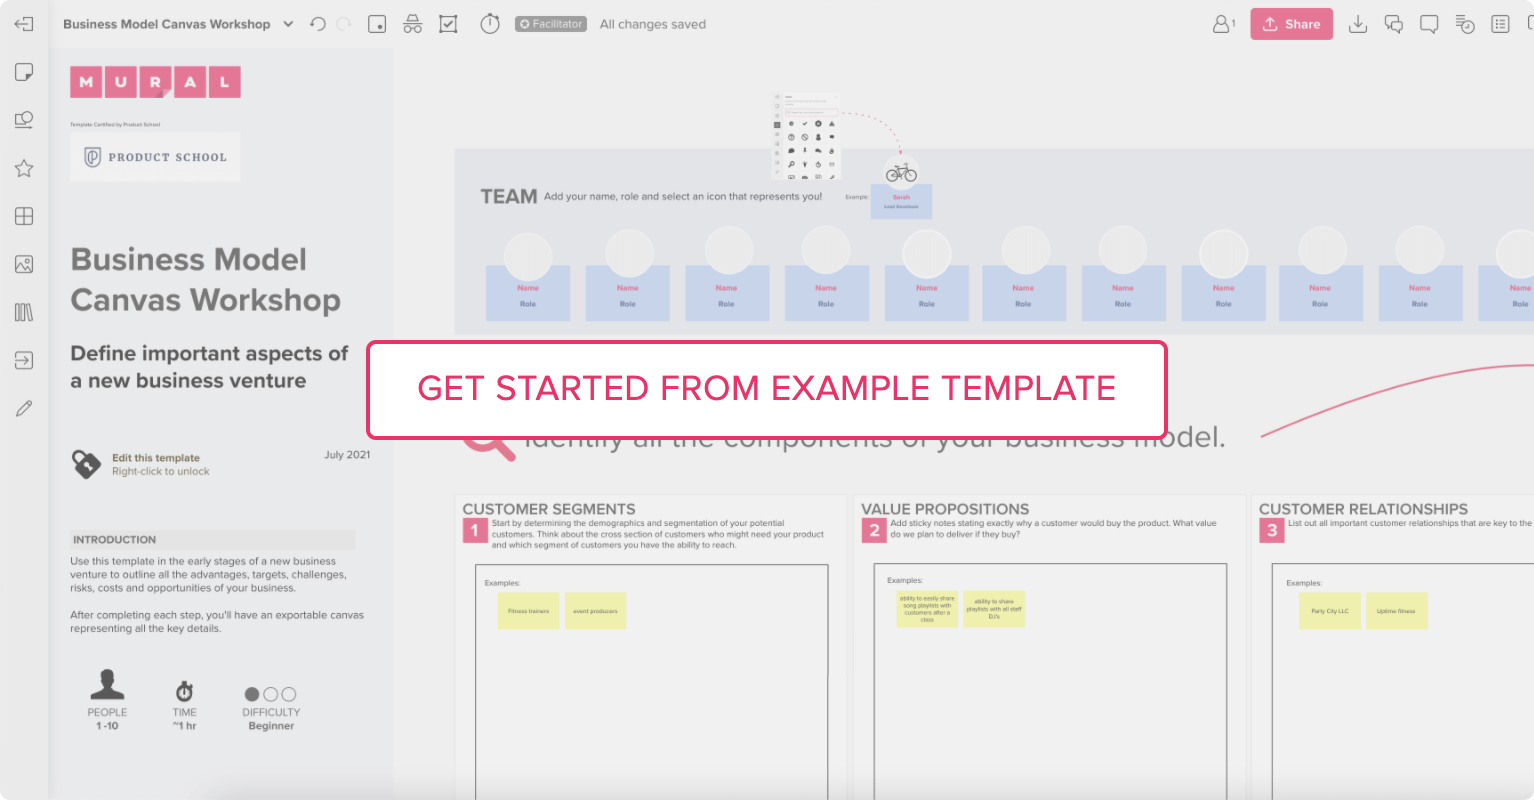 The Business Model Canvas Workshop template